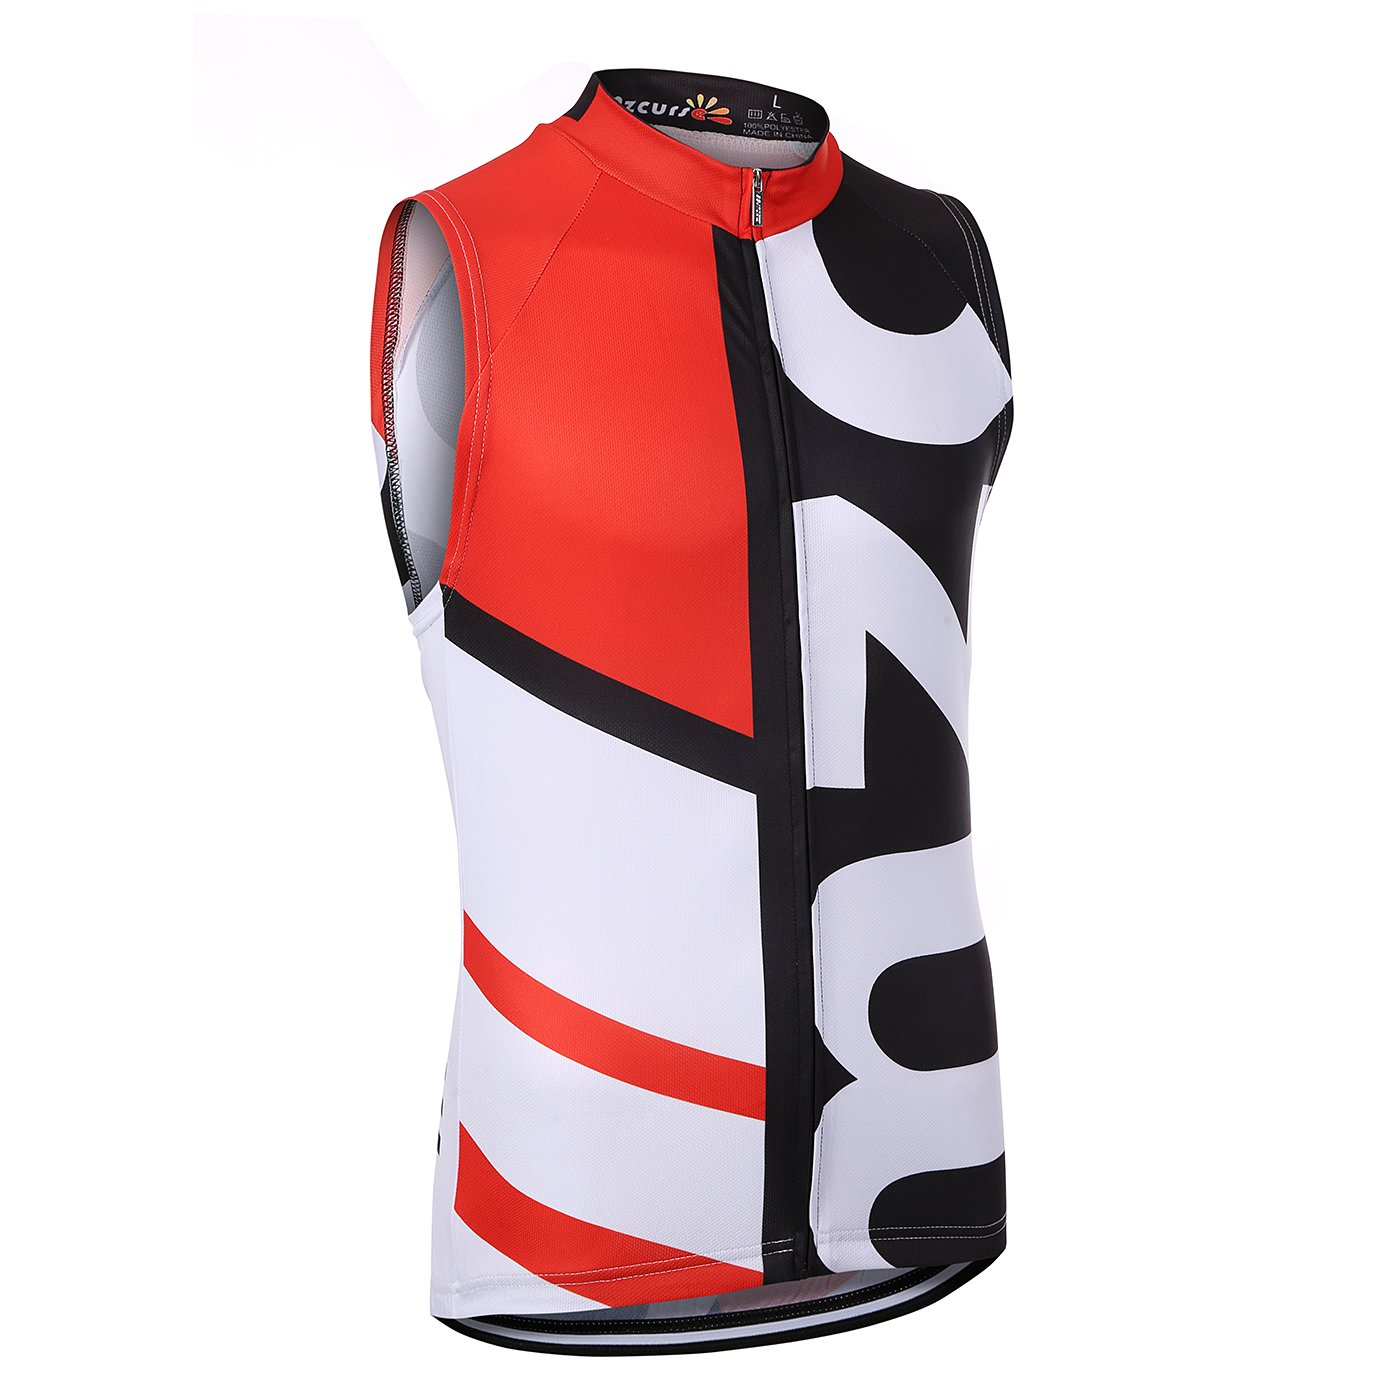 Mzcurse Men's Outdoor Pro Team Short Sleeve Cycling Jersey Bib Shorts Set (Red Vest, Large,please check the size chart) Linhao Co. Ltd sszx-115beixin-l